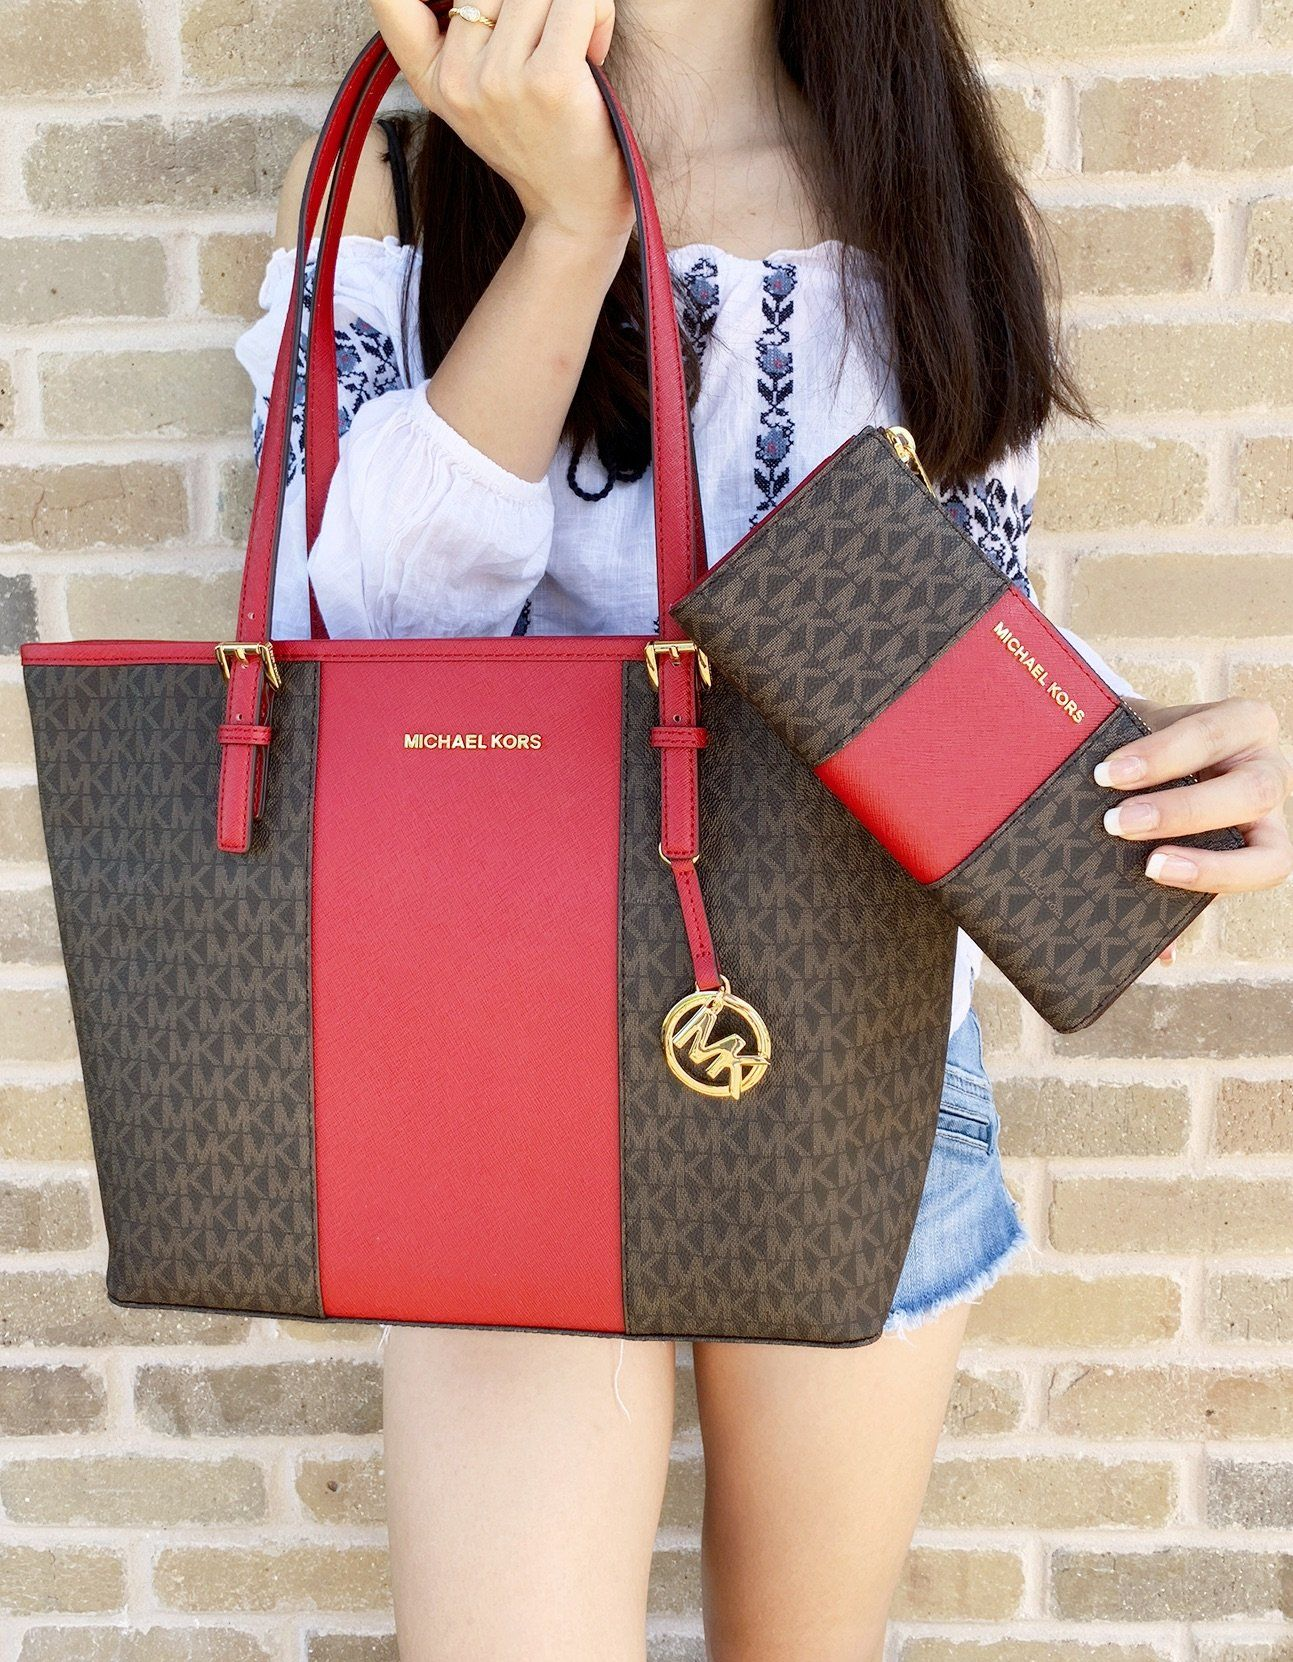 0d942e9275d9 Michael Kors Medium Carryall Tote Brown MK Signature Red Wallet SET #MK  #poshpackages #amazondeals #tradesycloset #ebay #ebayfashion #poshboss  #poshcloset ...